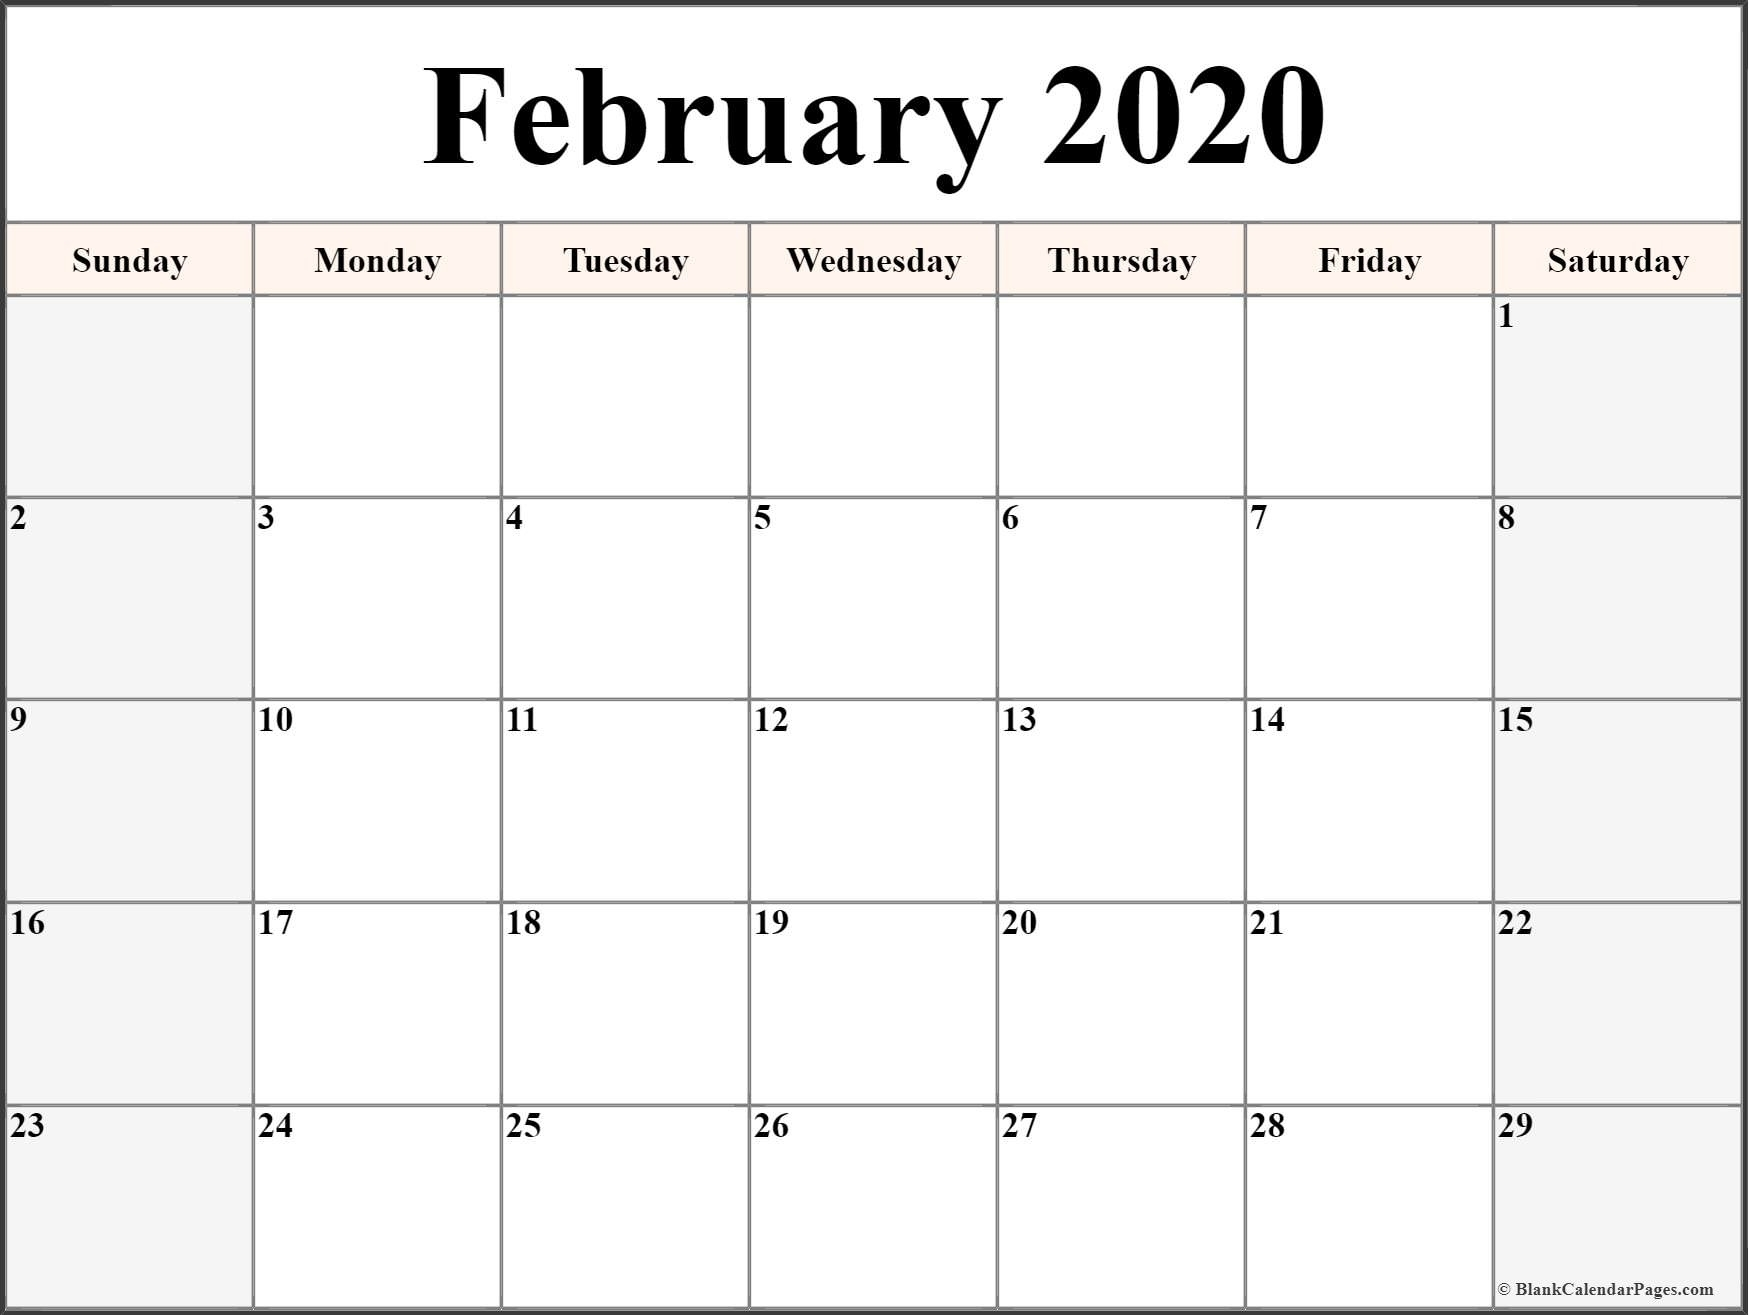 Calendar February 2020 with Dates